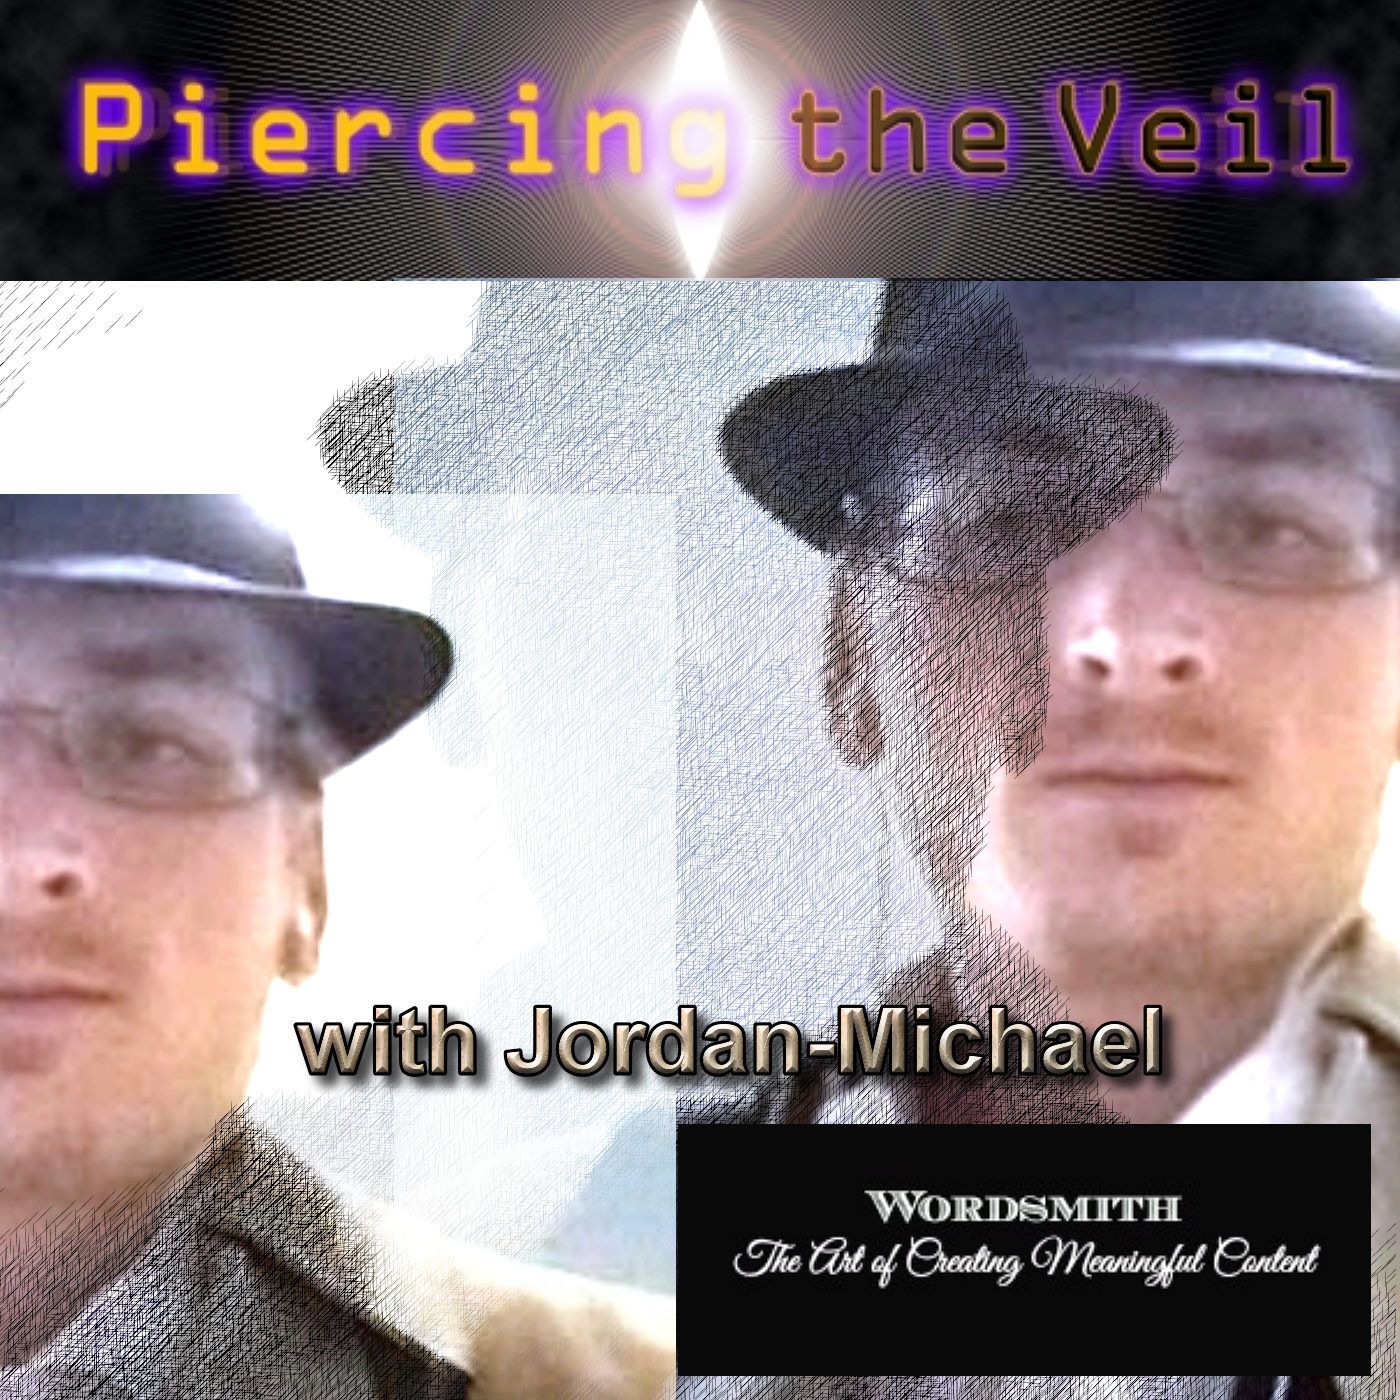 Piercing The Veil with Jordan-Michael